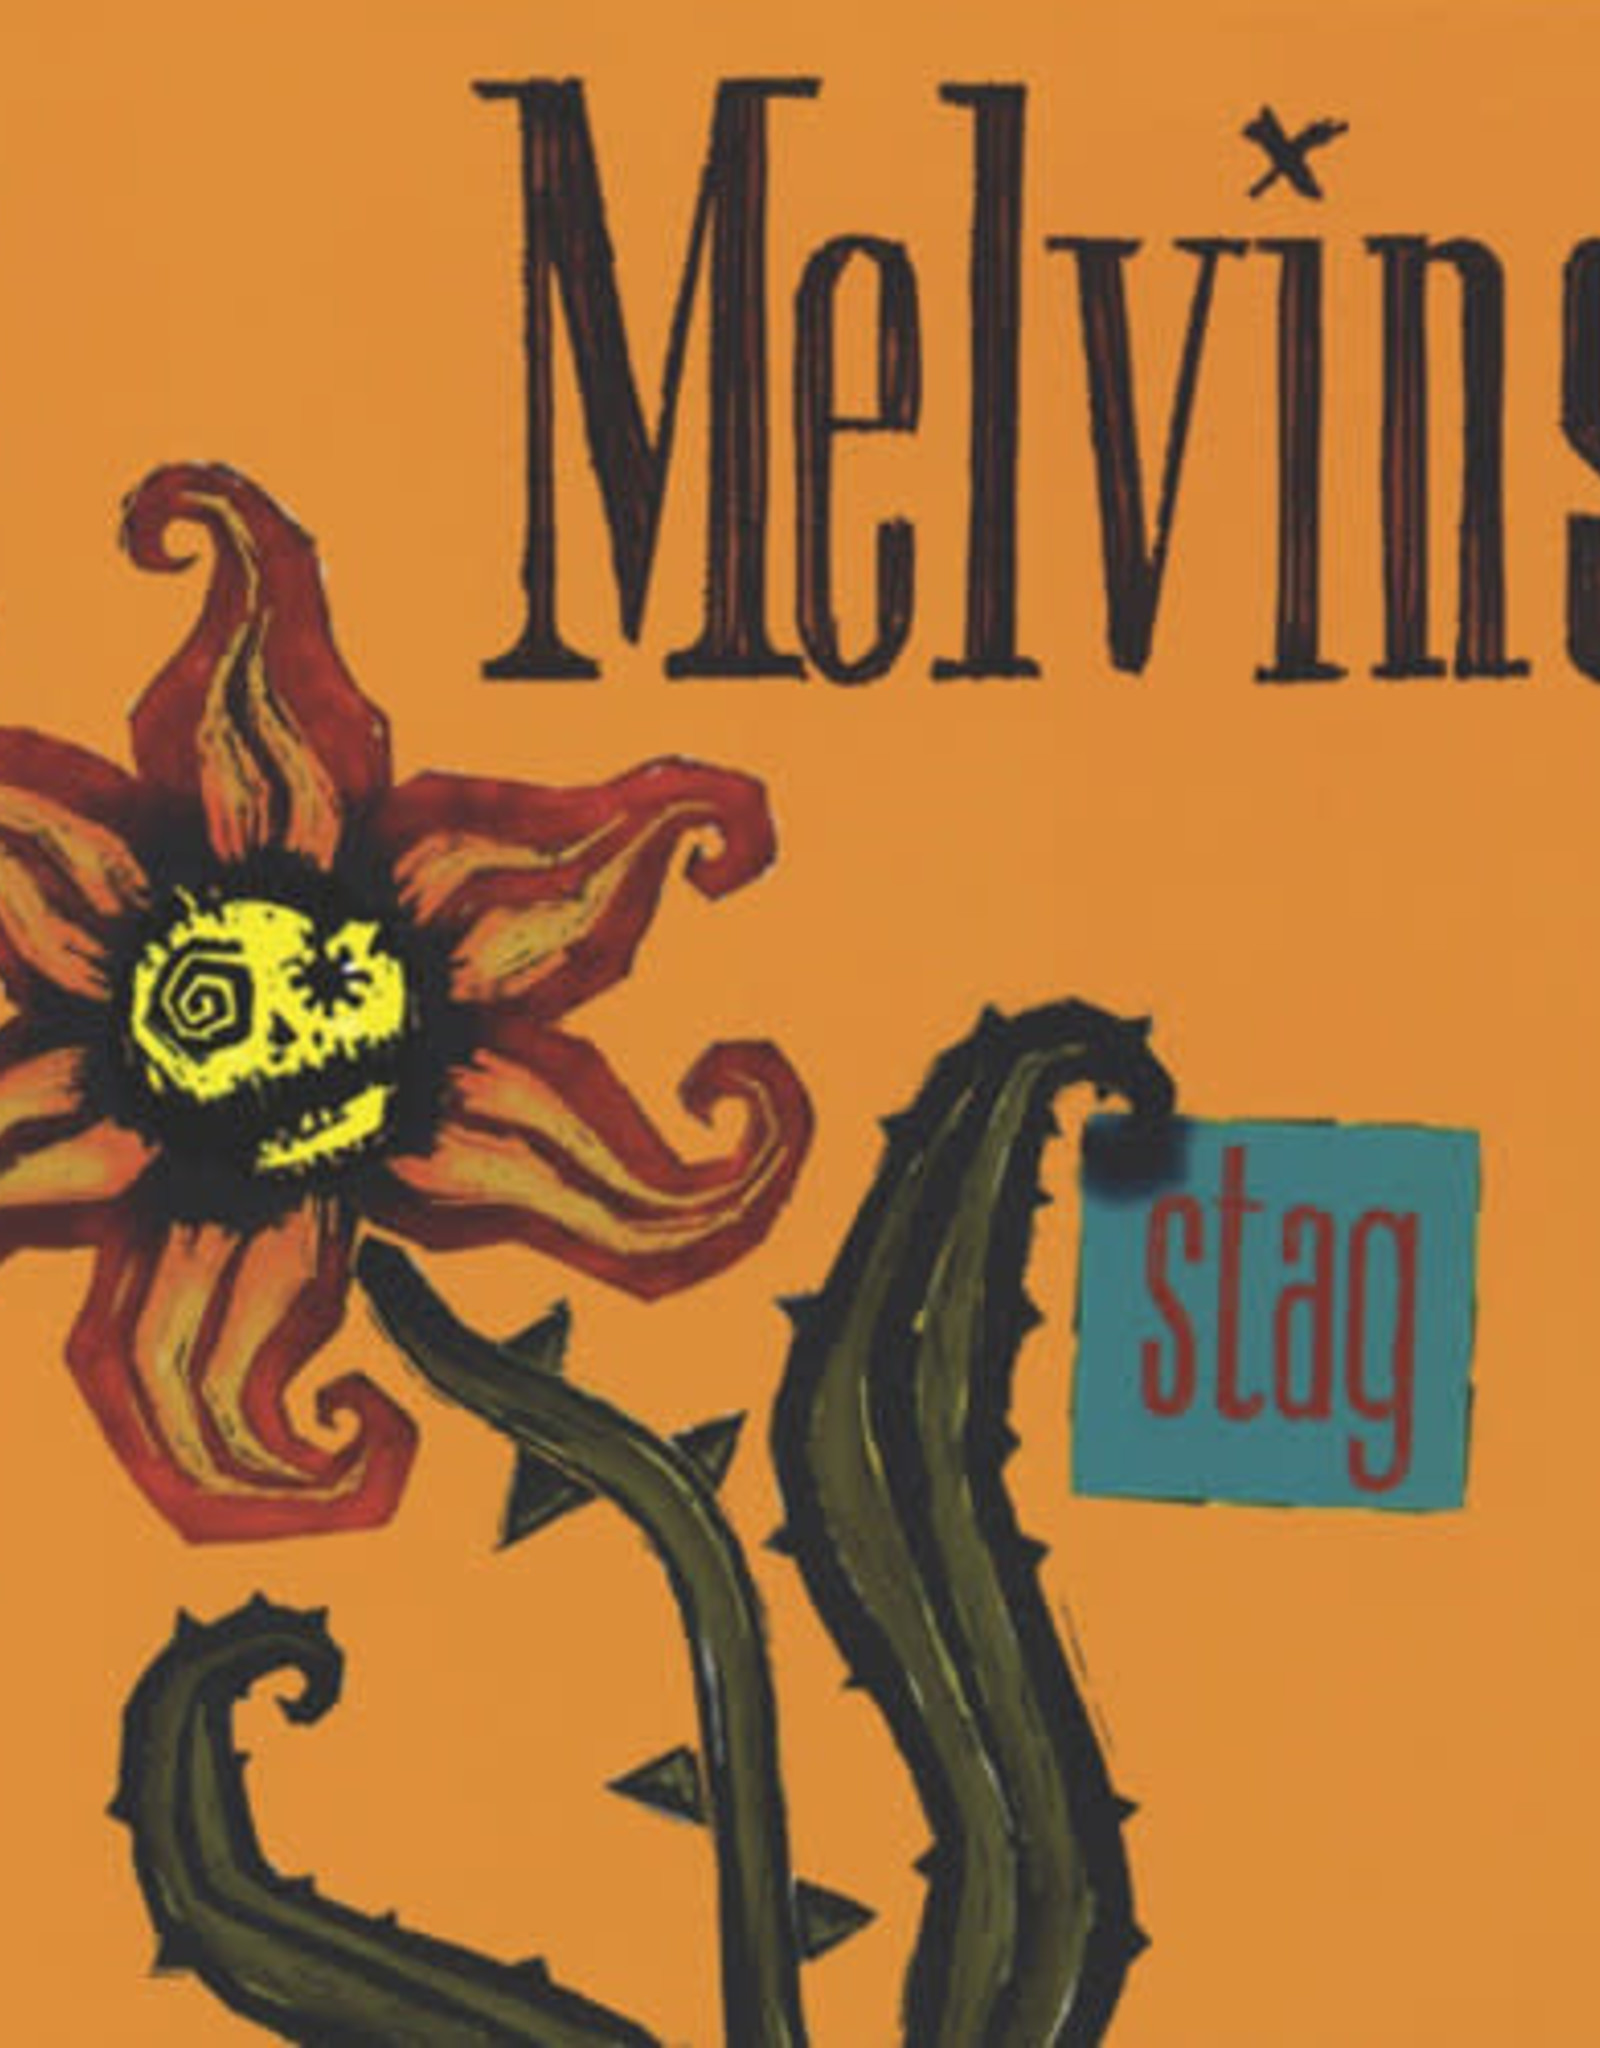 The Melvins - Stag